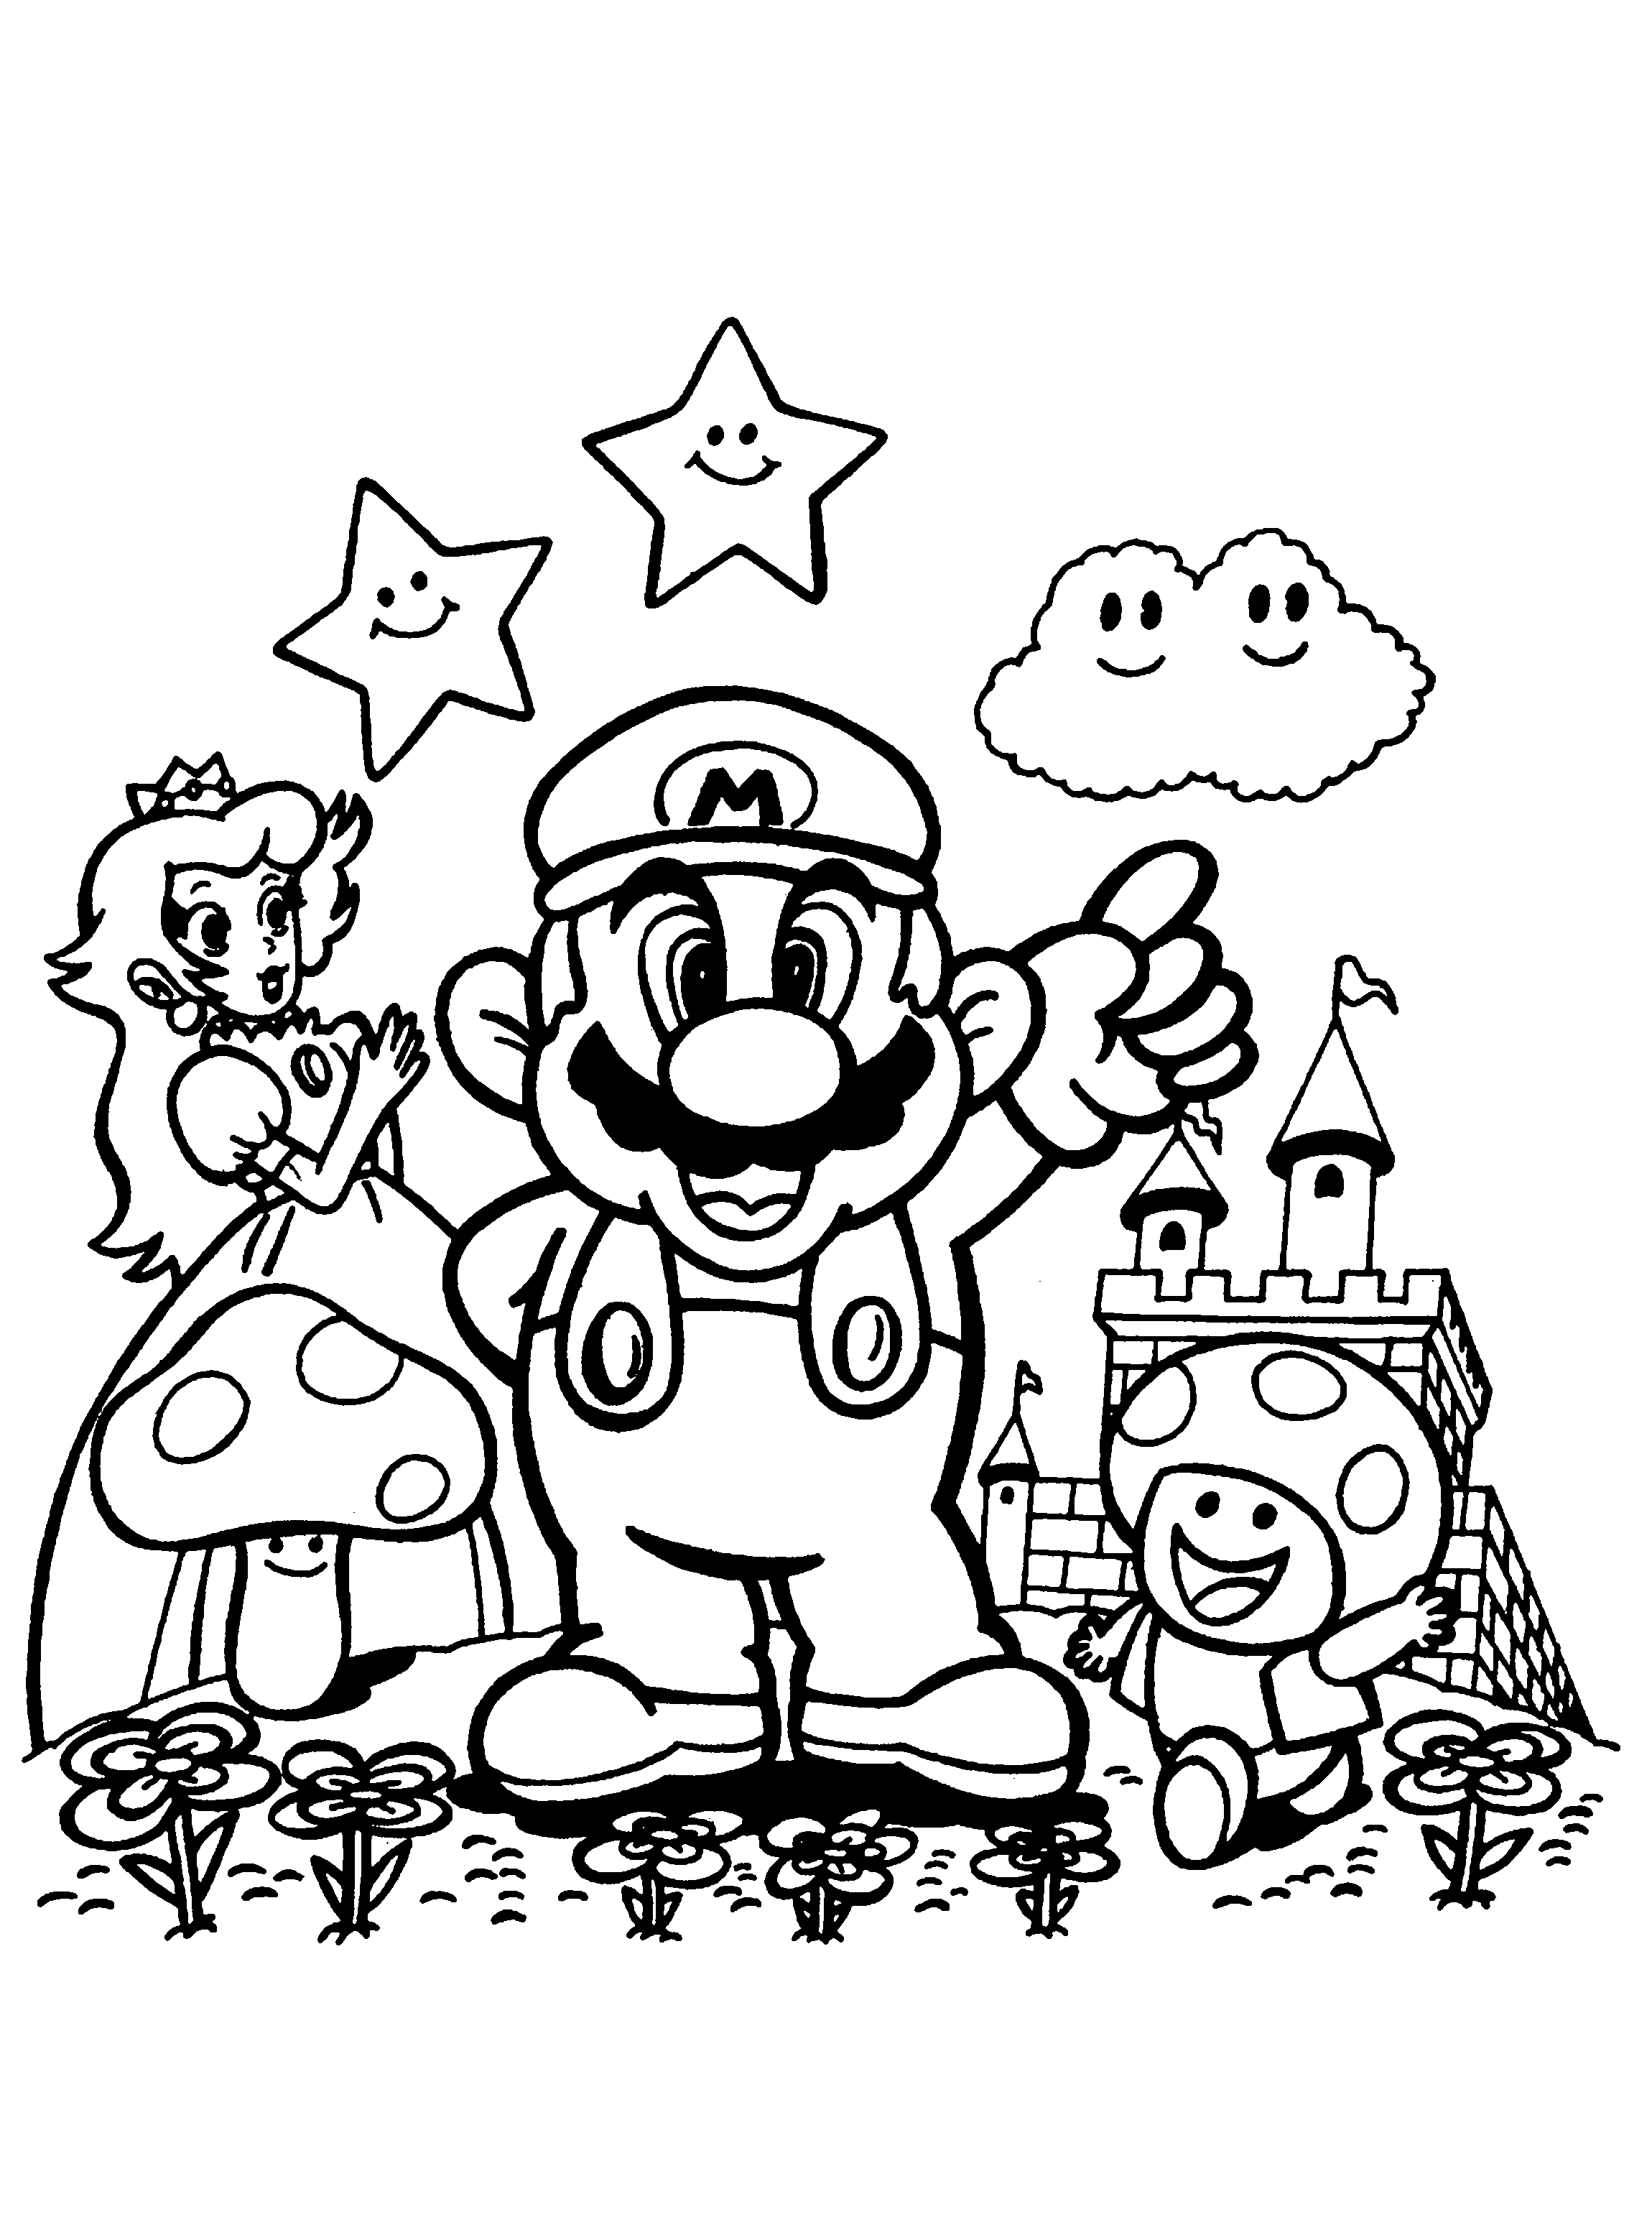 super mario brothers coloring pages - kleurplaat book=super mario bros 01&image=super mario bros 01 01 &oms=Prinses Paddestoel en Mario